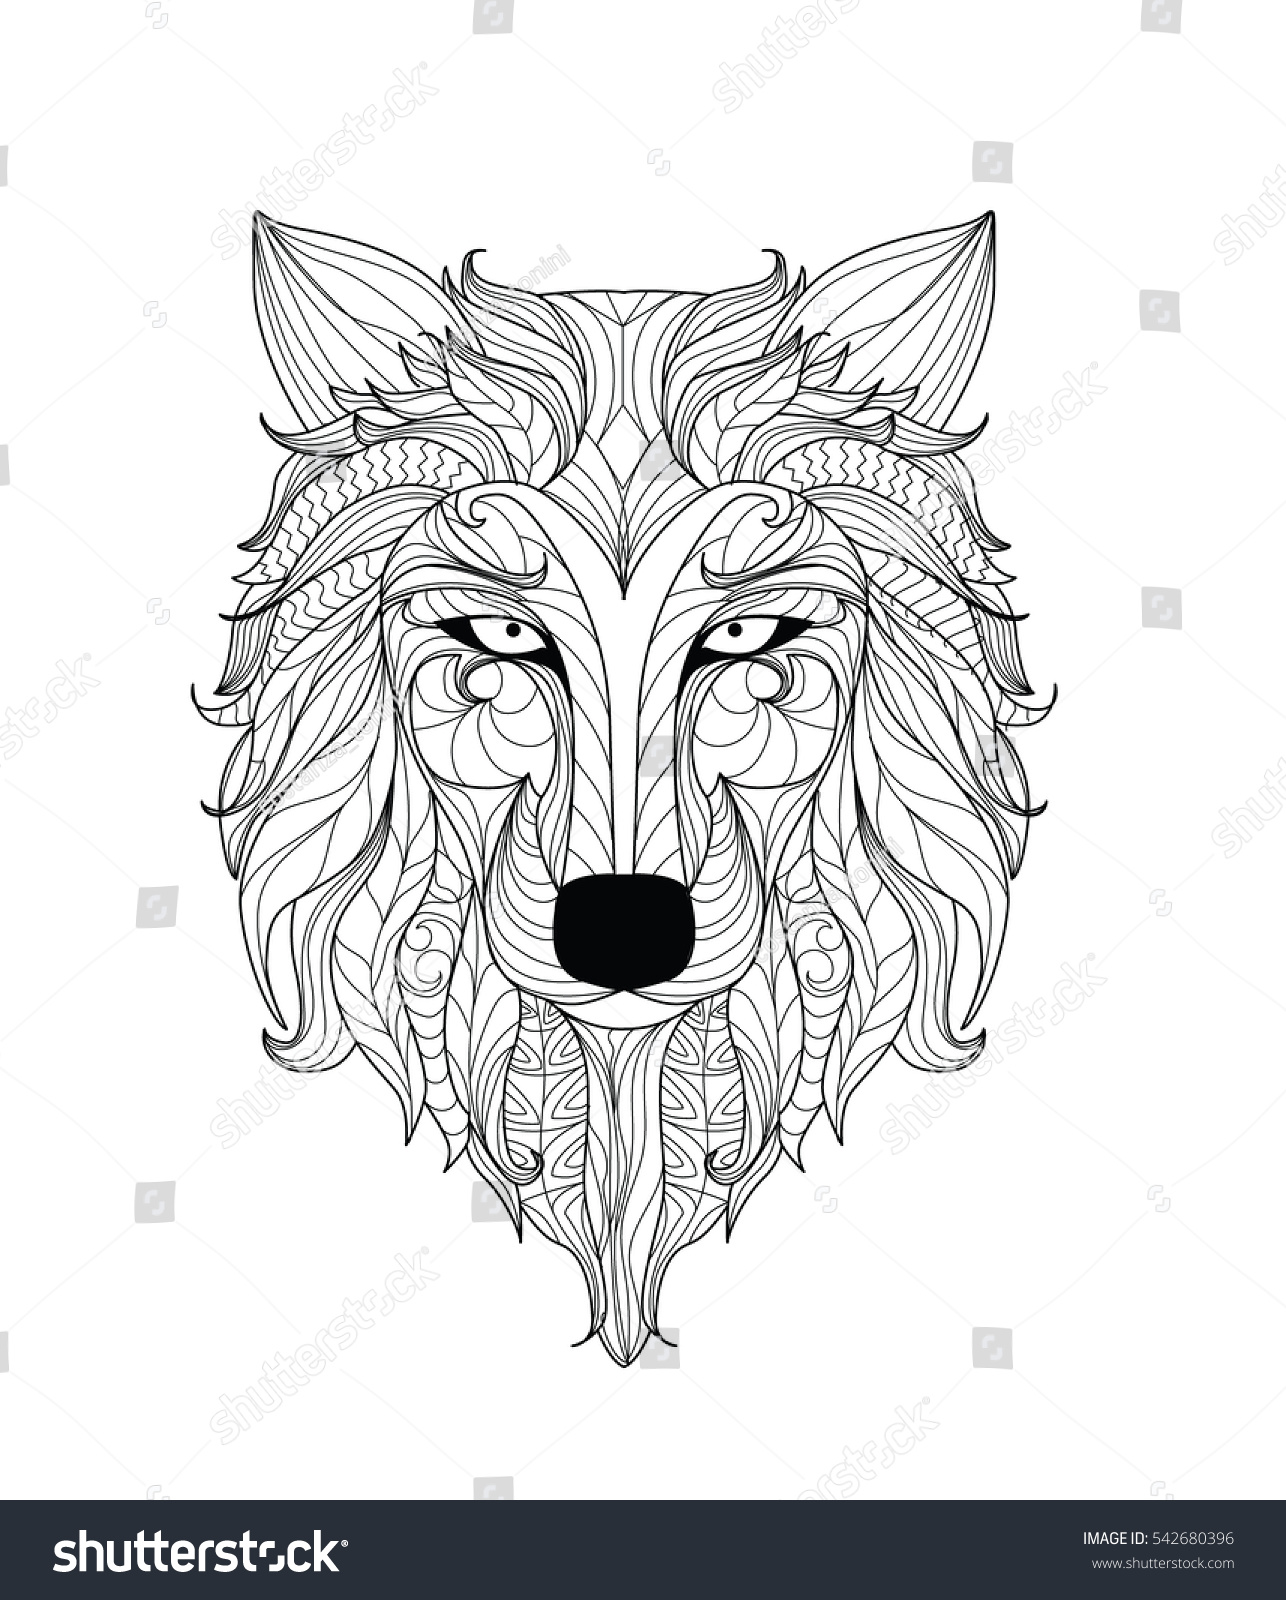 Wolf Line Art Mandalas Wiring Diagrams Double Switch Diagram Http Forumsoffroadcom Jeepshort Mandala Coloring Page Adults Zentangle Stock Vector Royalty Rh Shutterstock Com Lioness